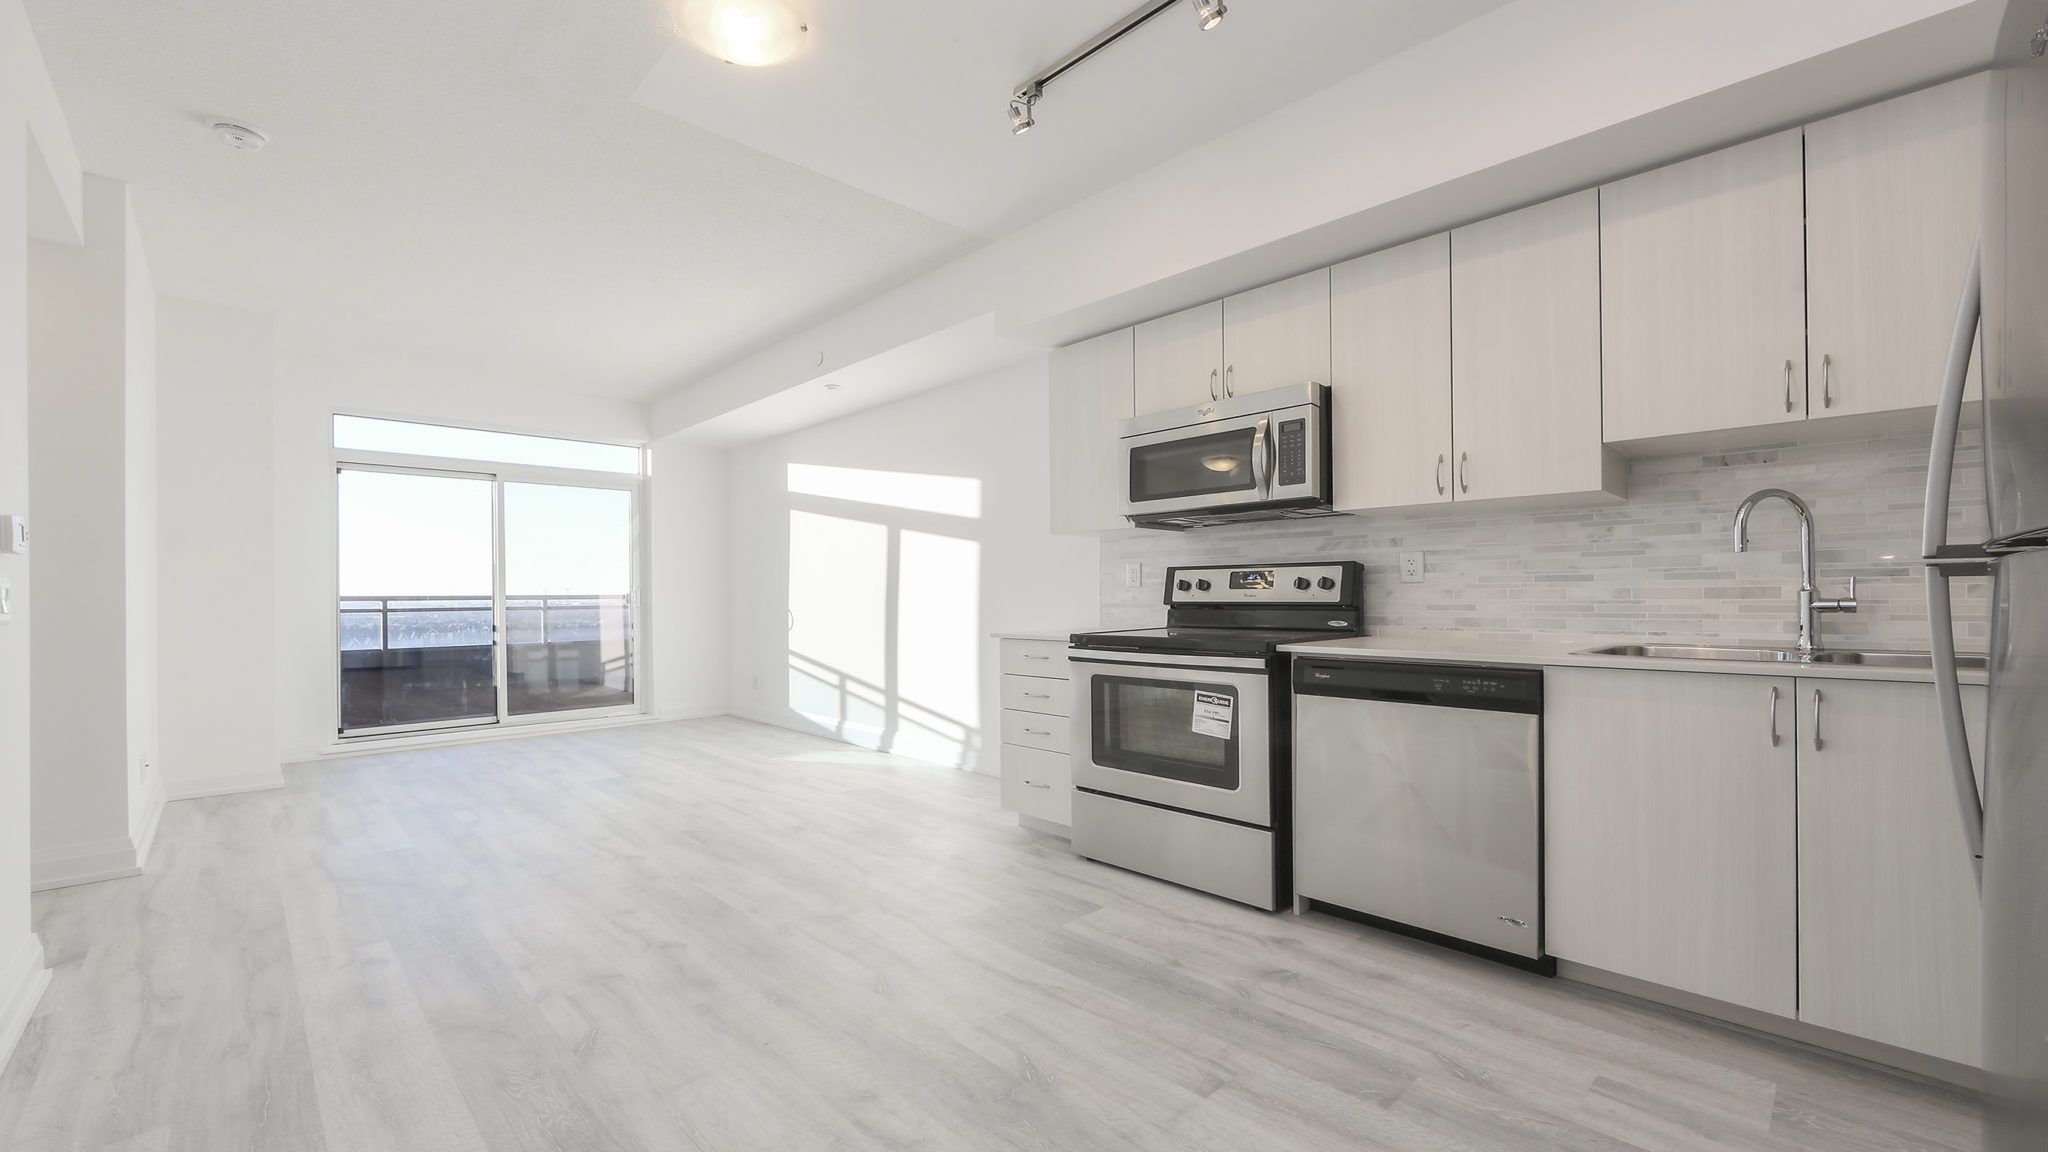 Another image showing the condo's open-concept style and lovely design. Here we see the kitchen and dining room.